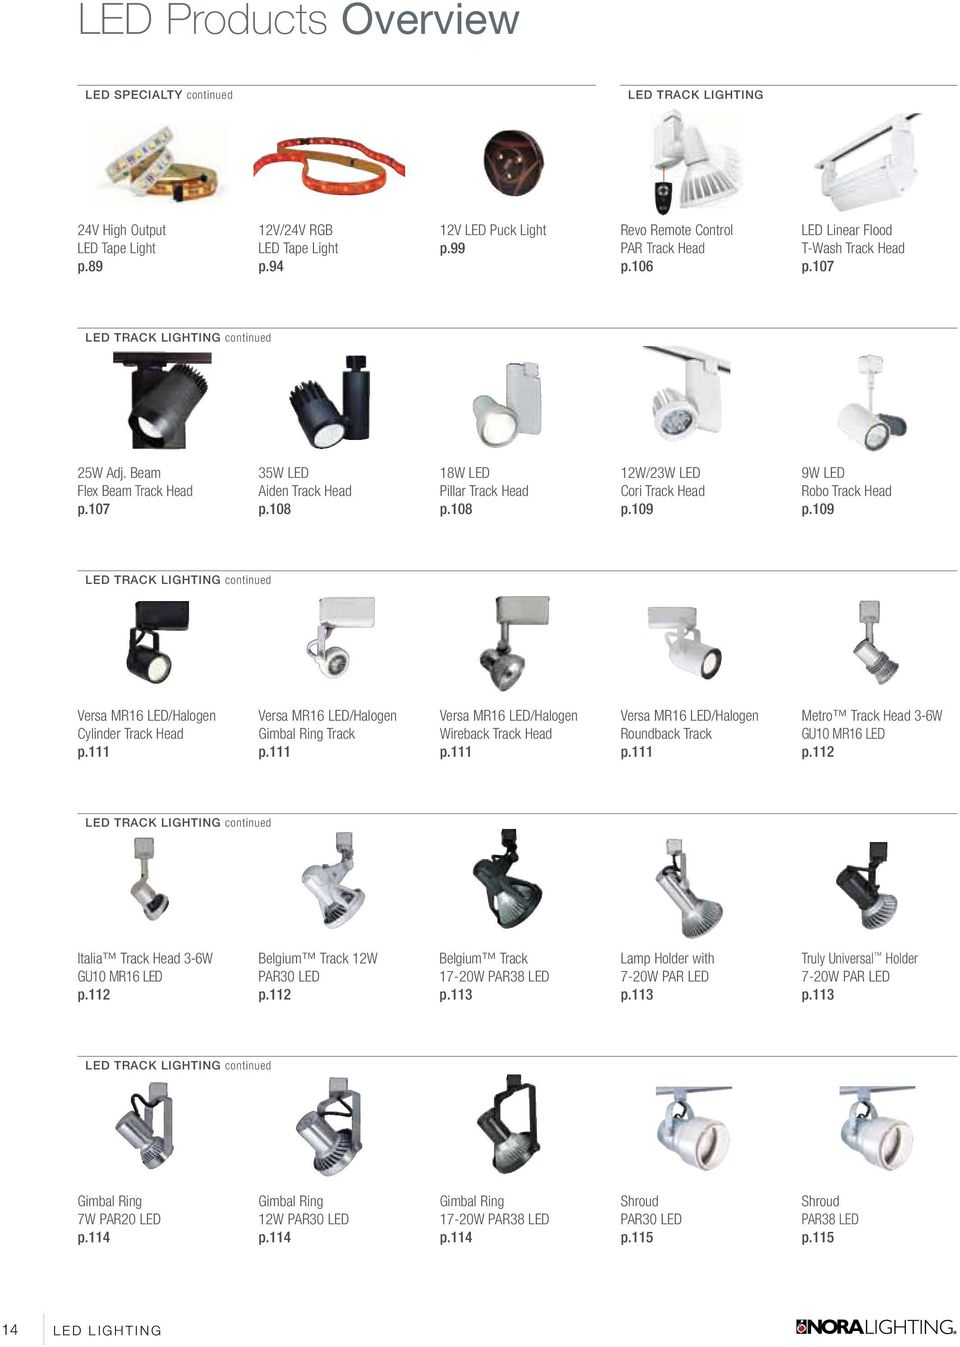 108 12W/23W LED Cori Track Head p.109 9W LED Robo Track Head p.109 LED TRACK LIGHTING continued Versa MR16 LED/Halogen Cylinder Track Head p.111 Versa MR16 LED/Halogen Gimbal Ring Track p.